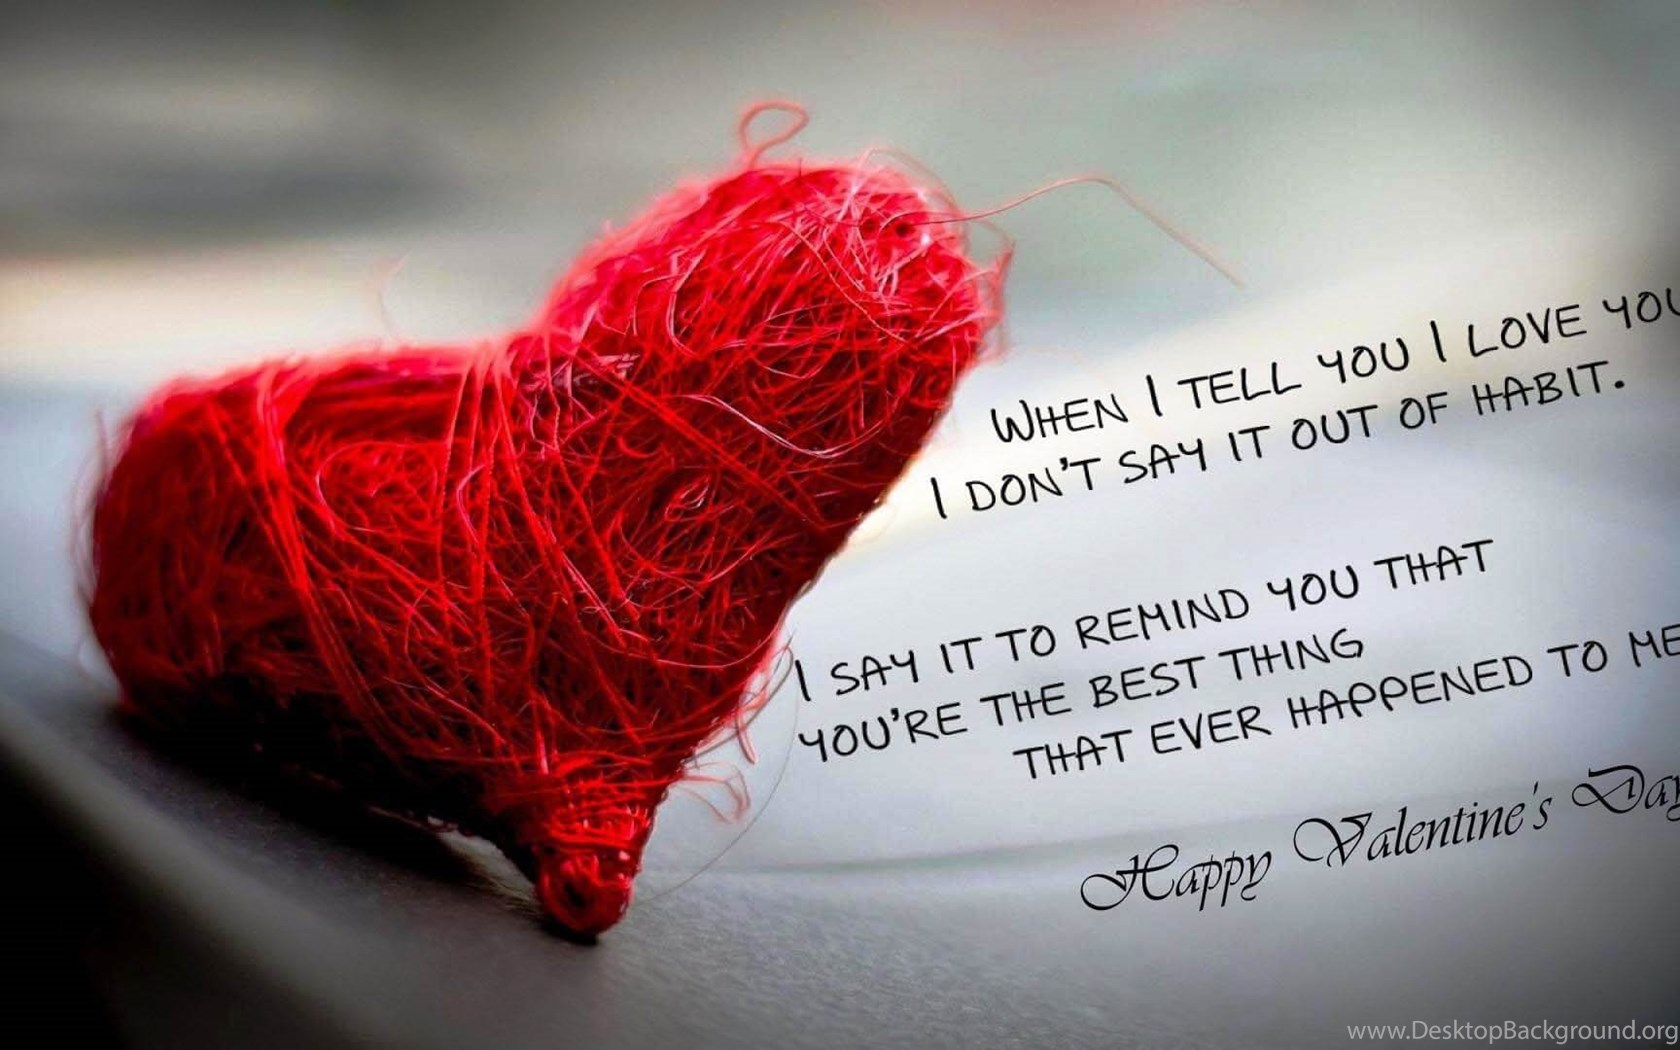 Happy Valentines Day Quotations Quotes Free Hd Wallpaper Jpg Desktop